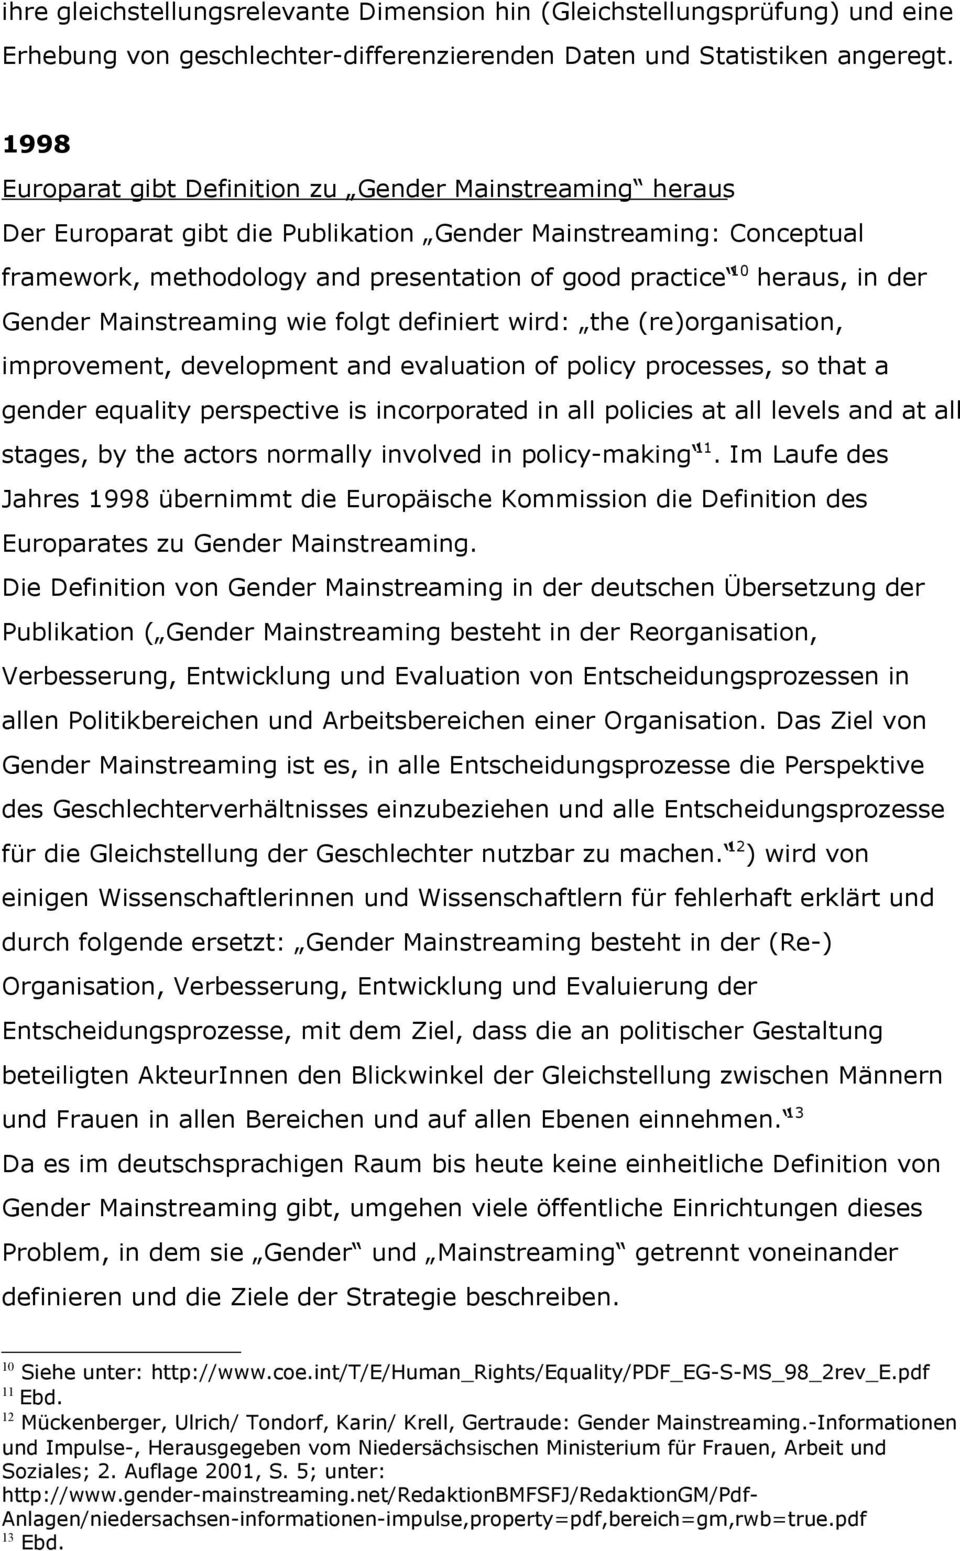 in der Gender Mainstreaming wie folgt definiert wird: the (re)organisation, improvement, development and evaluation of policy processes, so that a gender equality perspective is incorporated in all